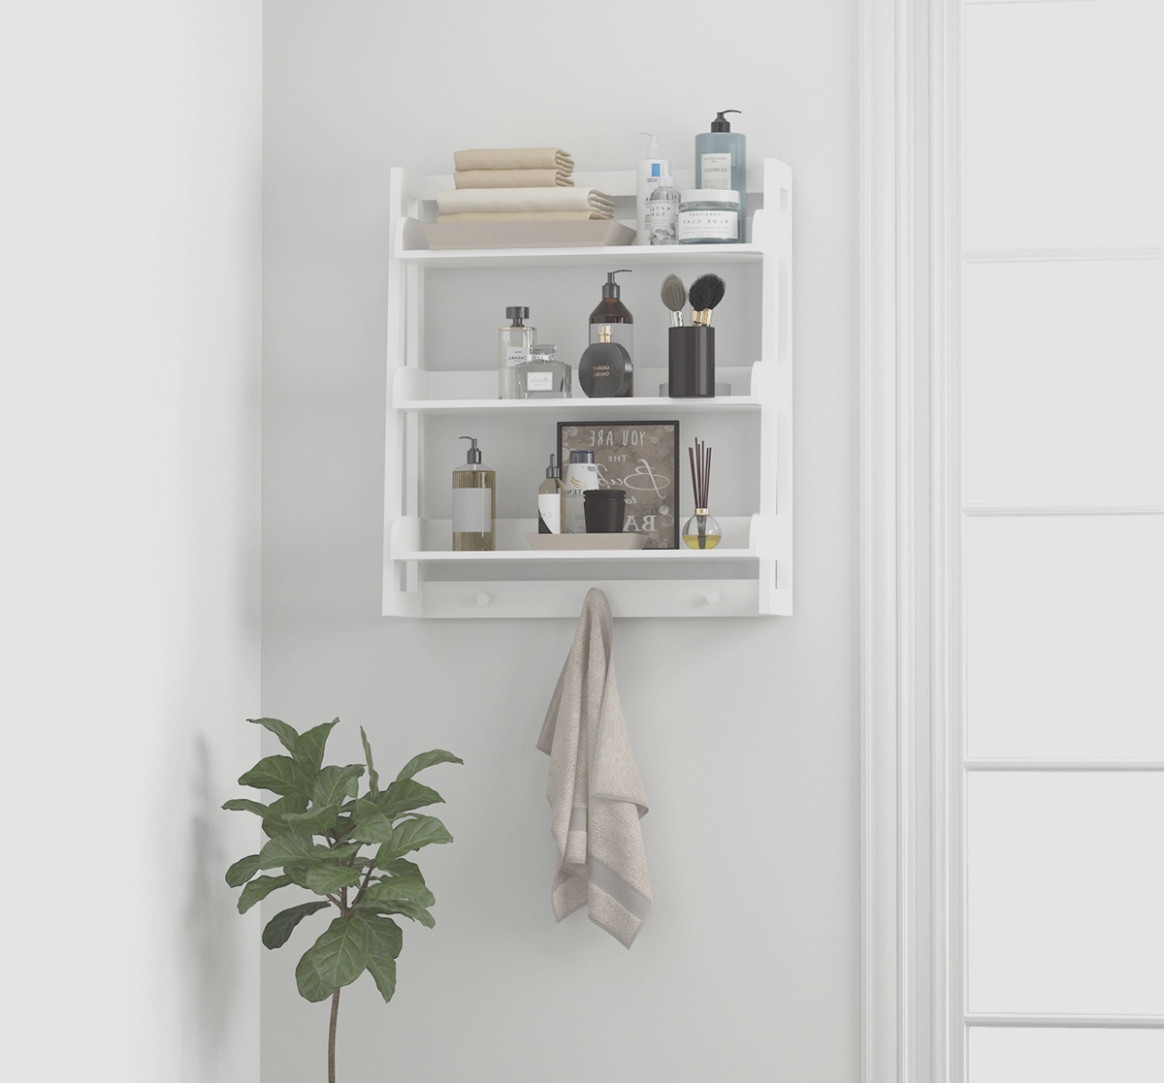 Bathroom Wall Cabinet With Hooks